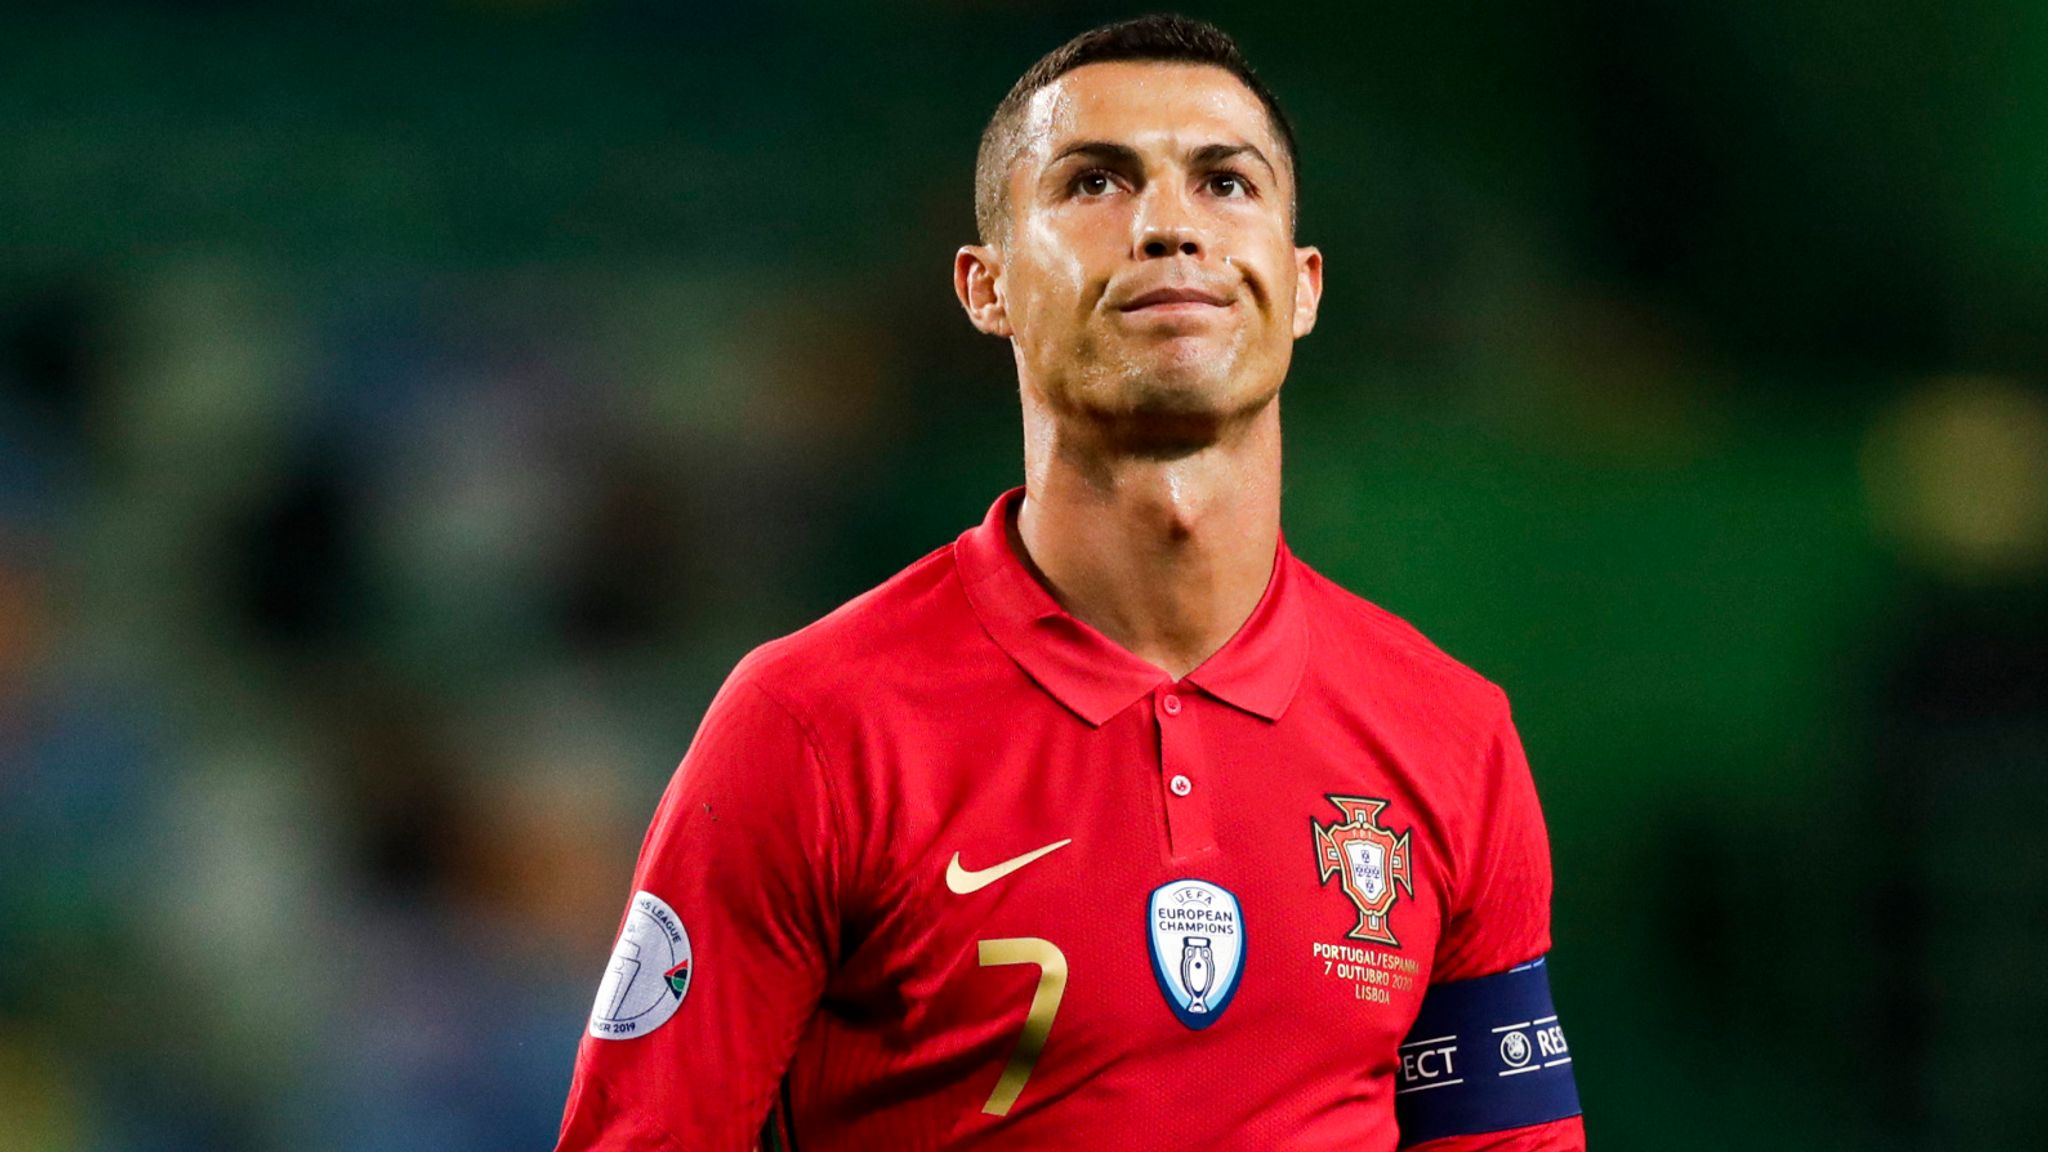 Cristiano Ronaldo Portugal And Juventus Star Tests Positive For Coronavirus Football News Sky Sports